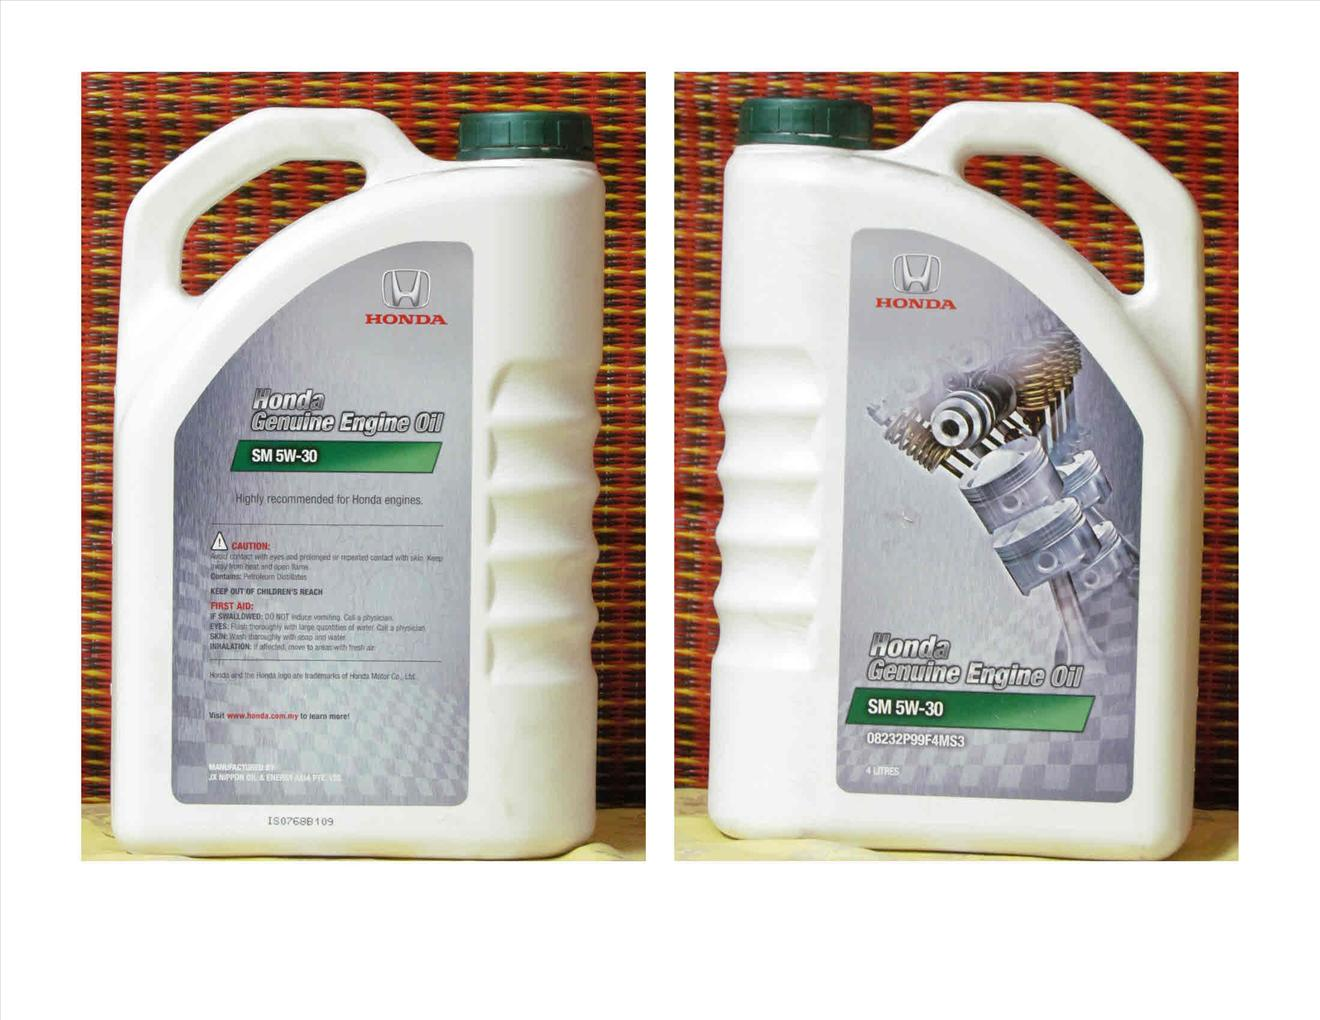 Honda Semi Synthetic Engine Oil 4 Liters (5W-30)